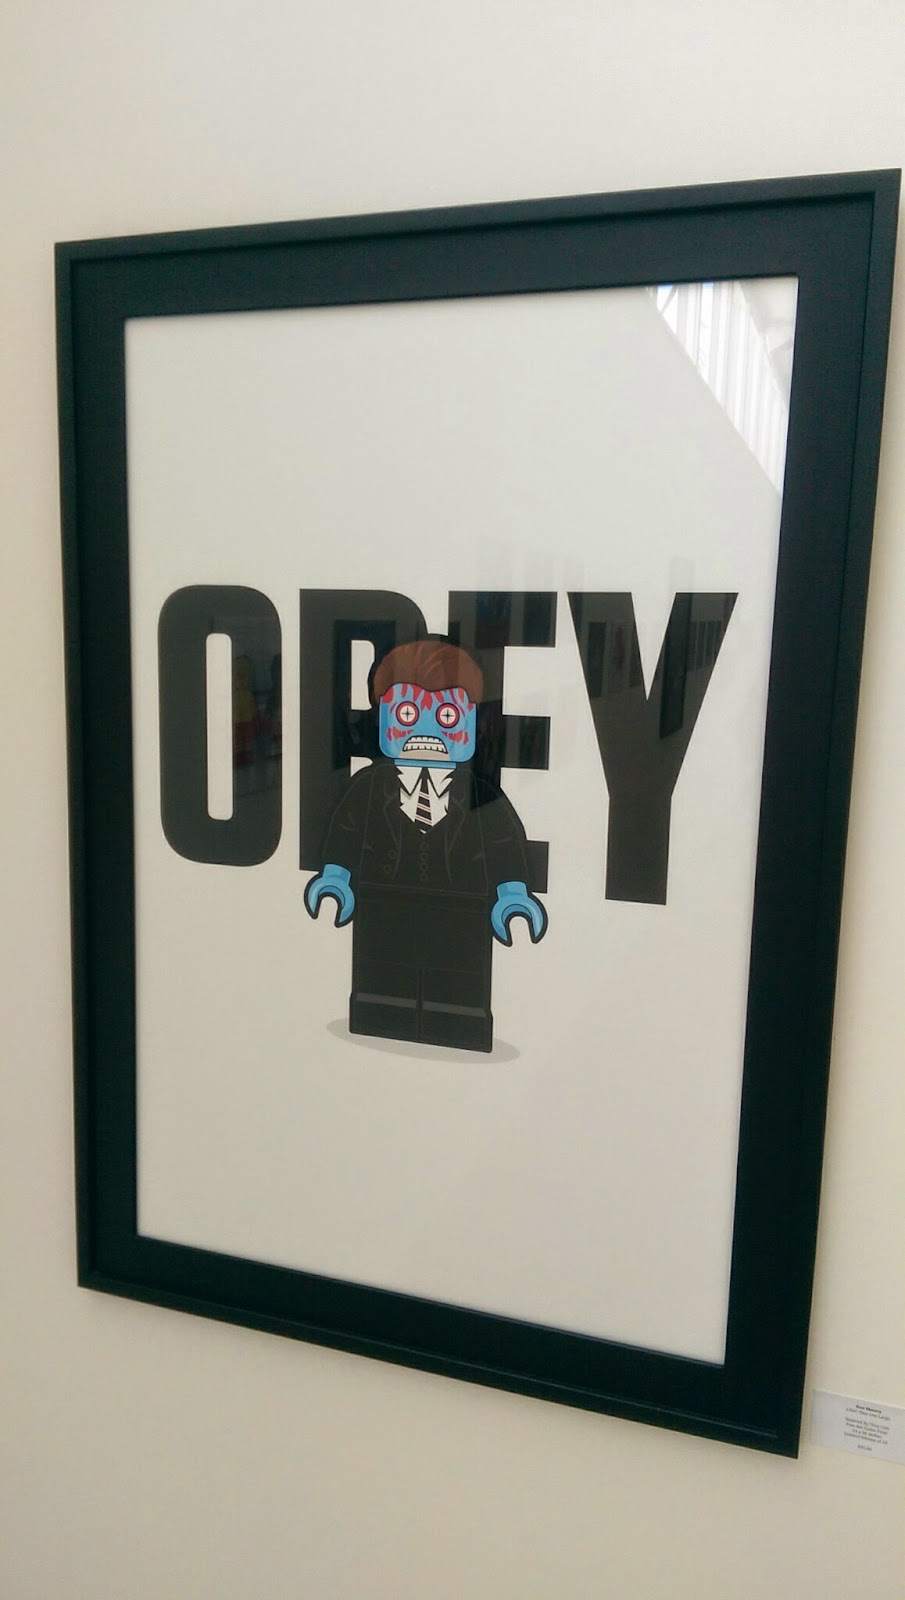 Hero Complex Gallery - LEGO Memories: They Live